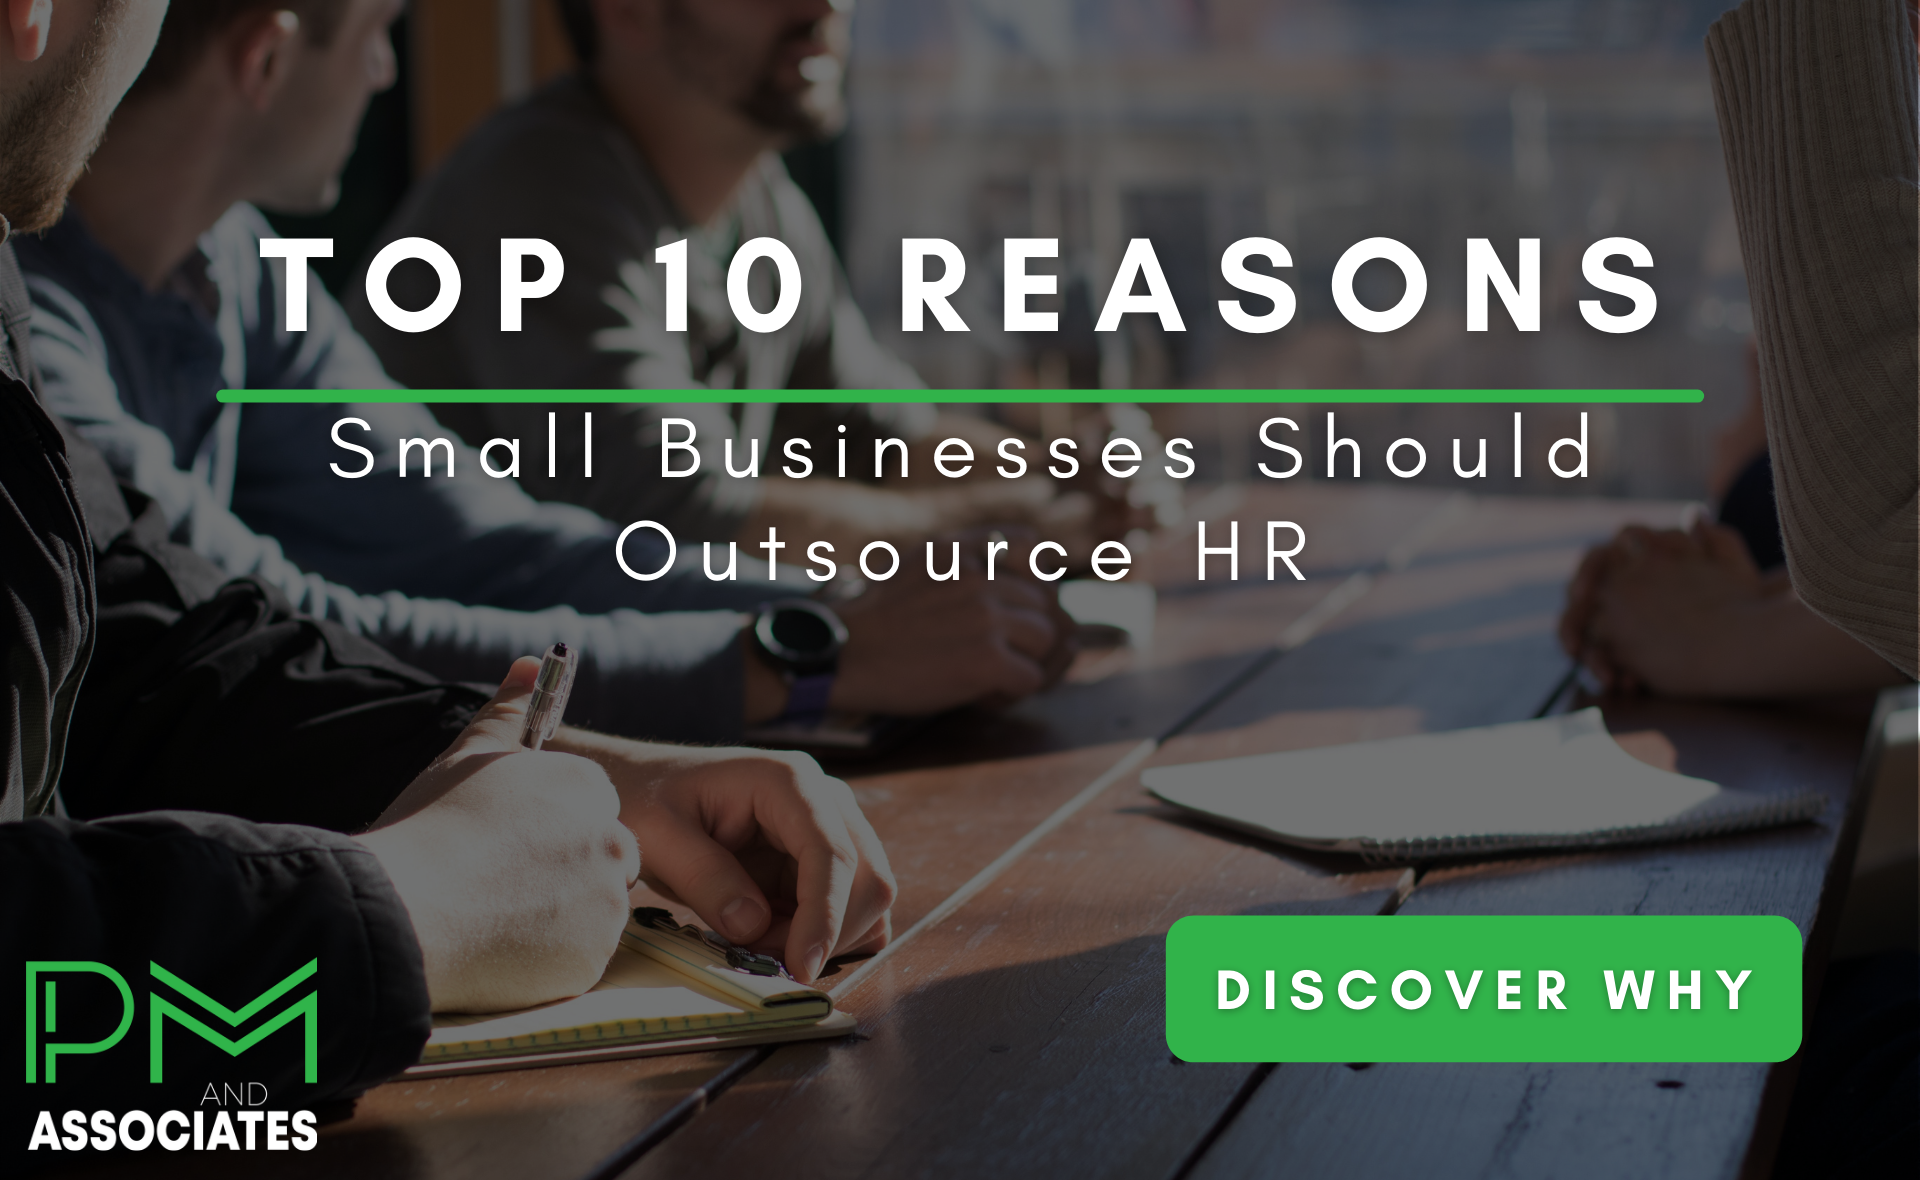 Top 10 Reasons Small Businesses Should Outsource HR